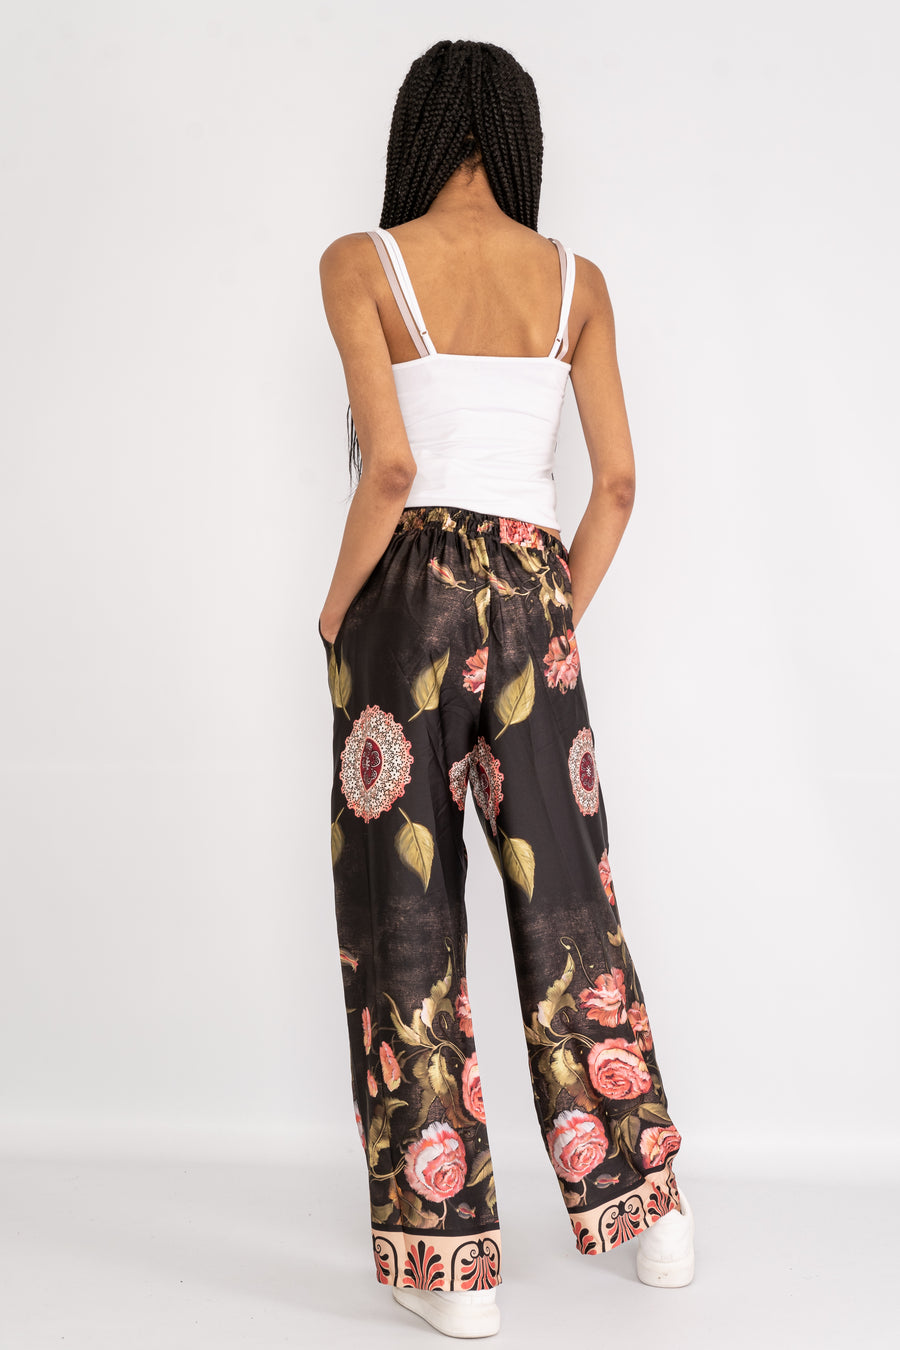 Wide leg trousers in floral patterned satin.